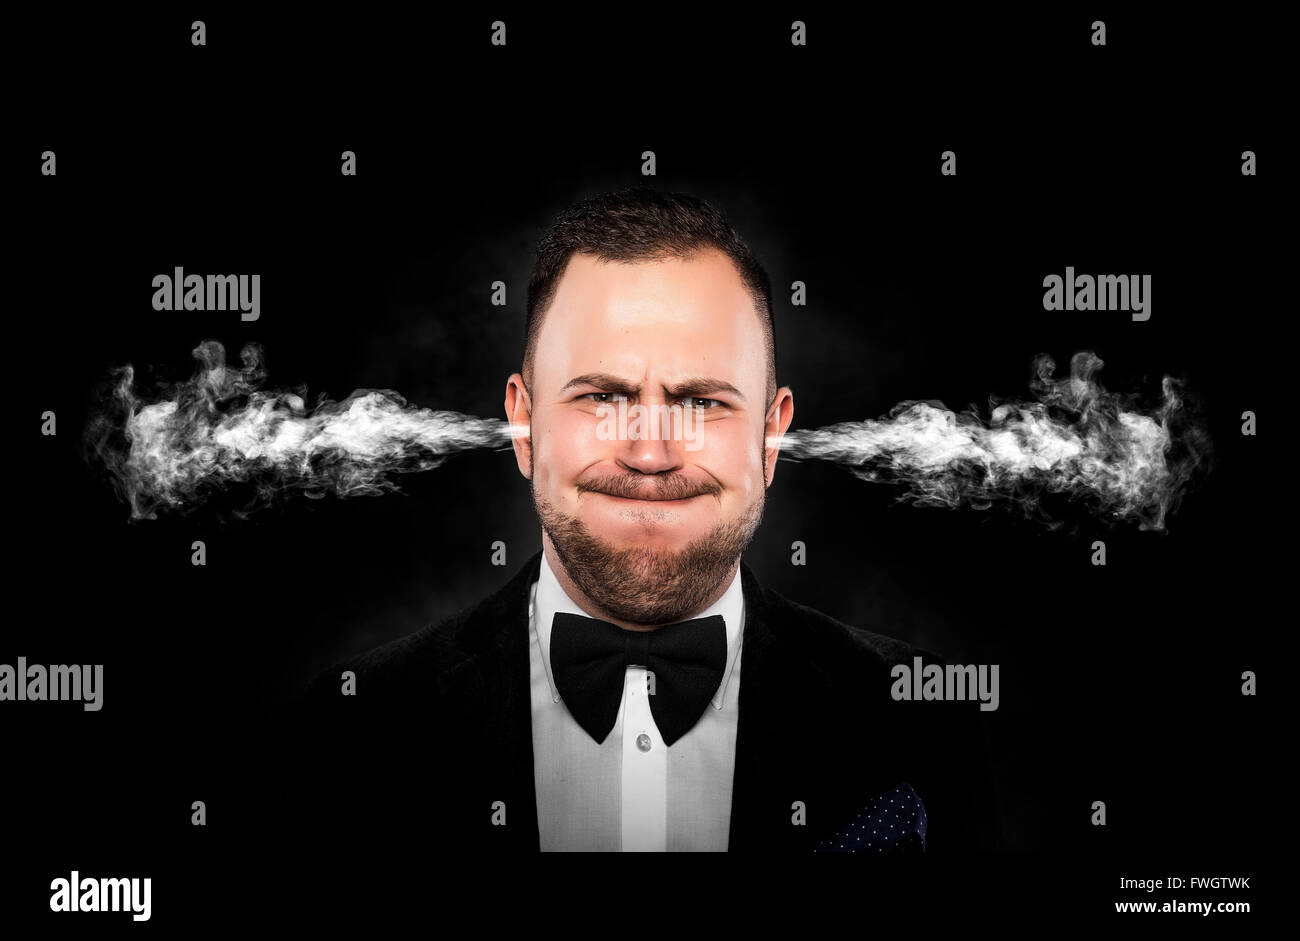 Stressful man with smoke or fume coming out from his ears on dark background. - Stock Image